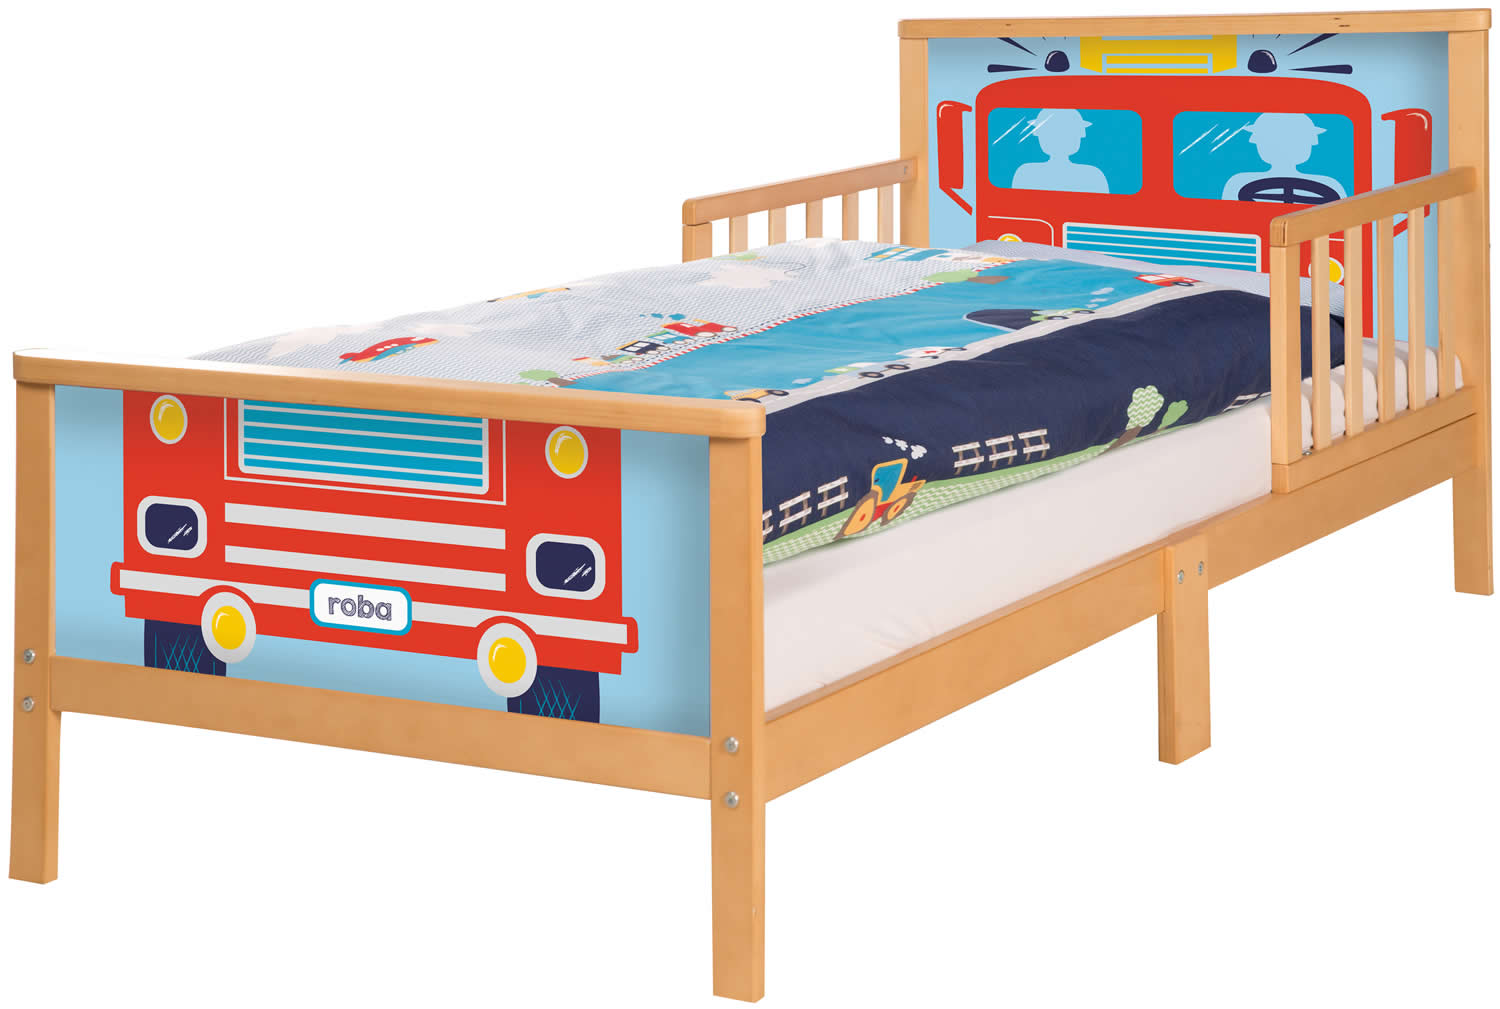 roba toddler bett kinderbett juniorbett rausfallschutz 70x140 cm holz. Black Bedroom Furniture Sets. Home Design Ideas